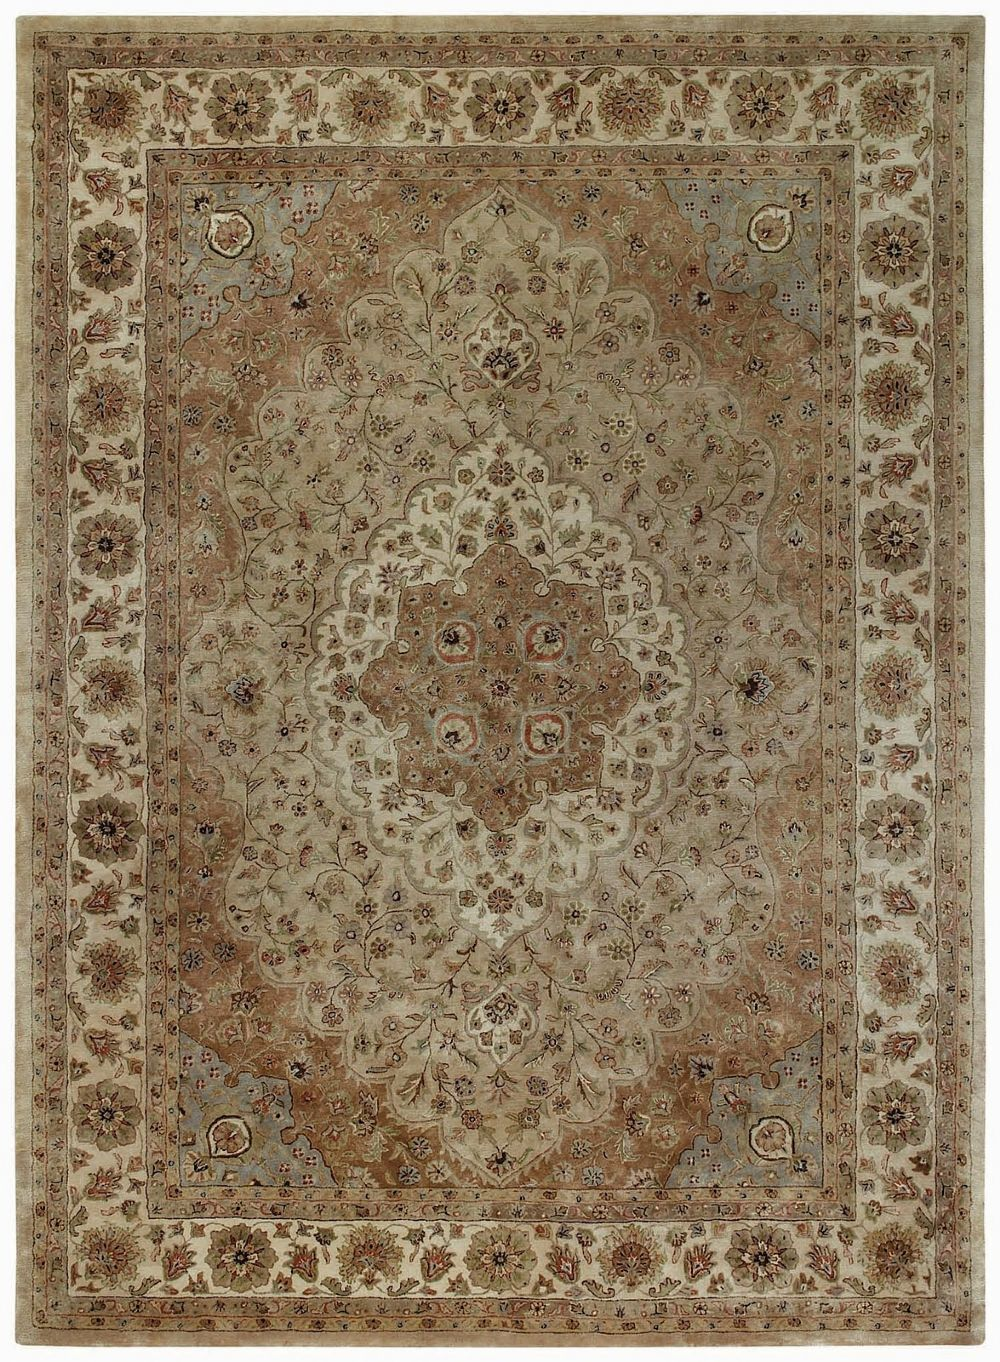 capel forest park-tabriz european area rug collection